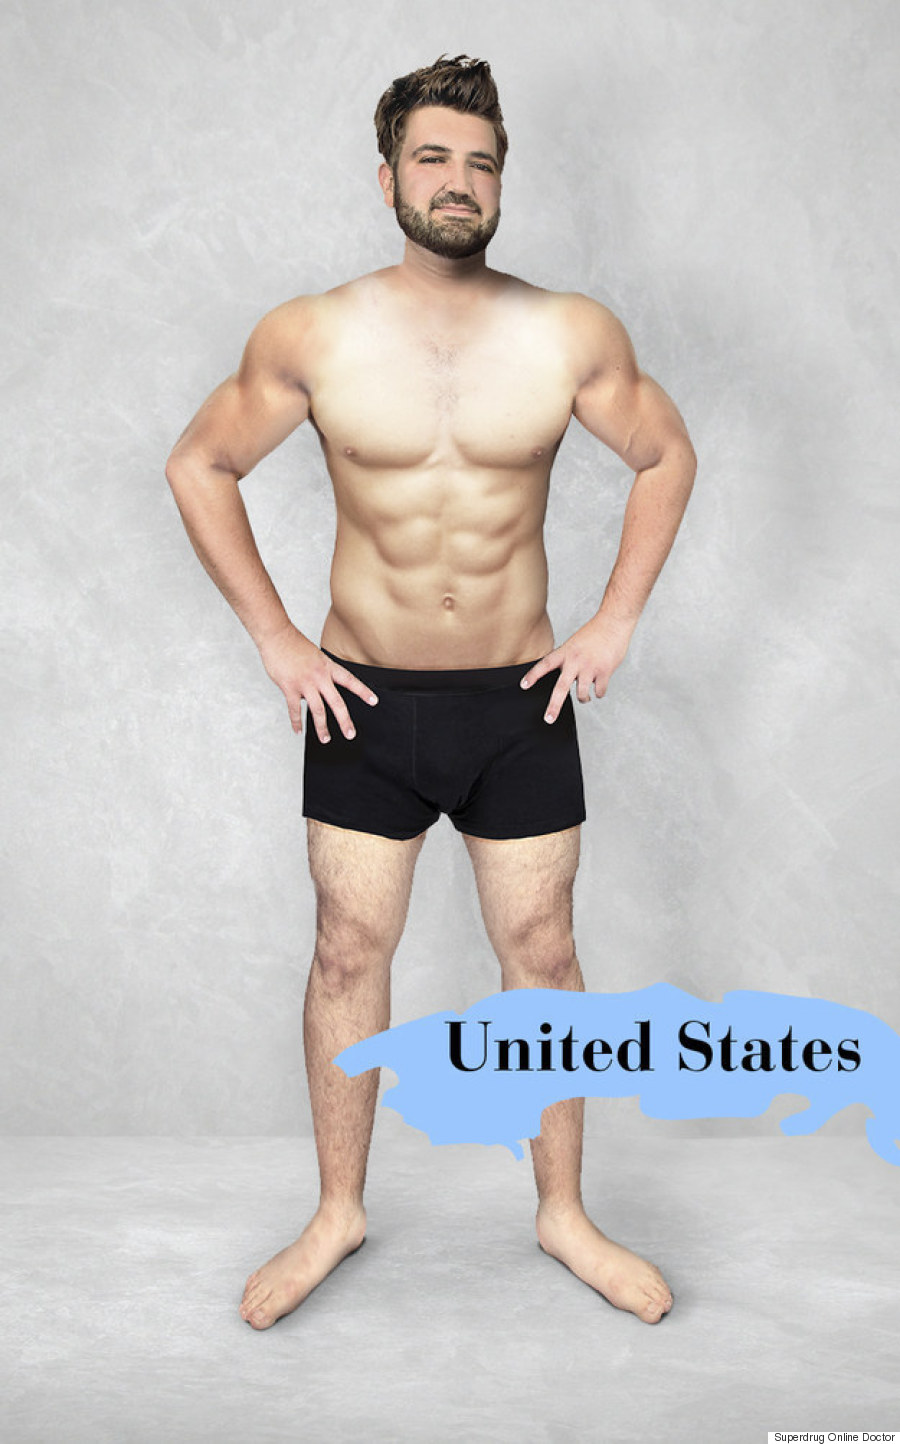 united states ideal man